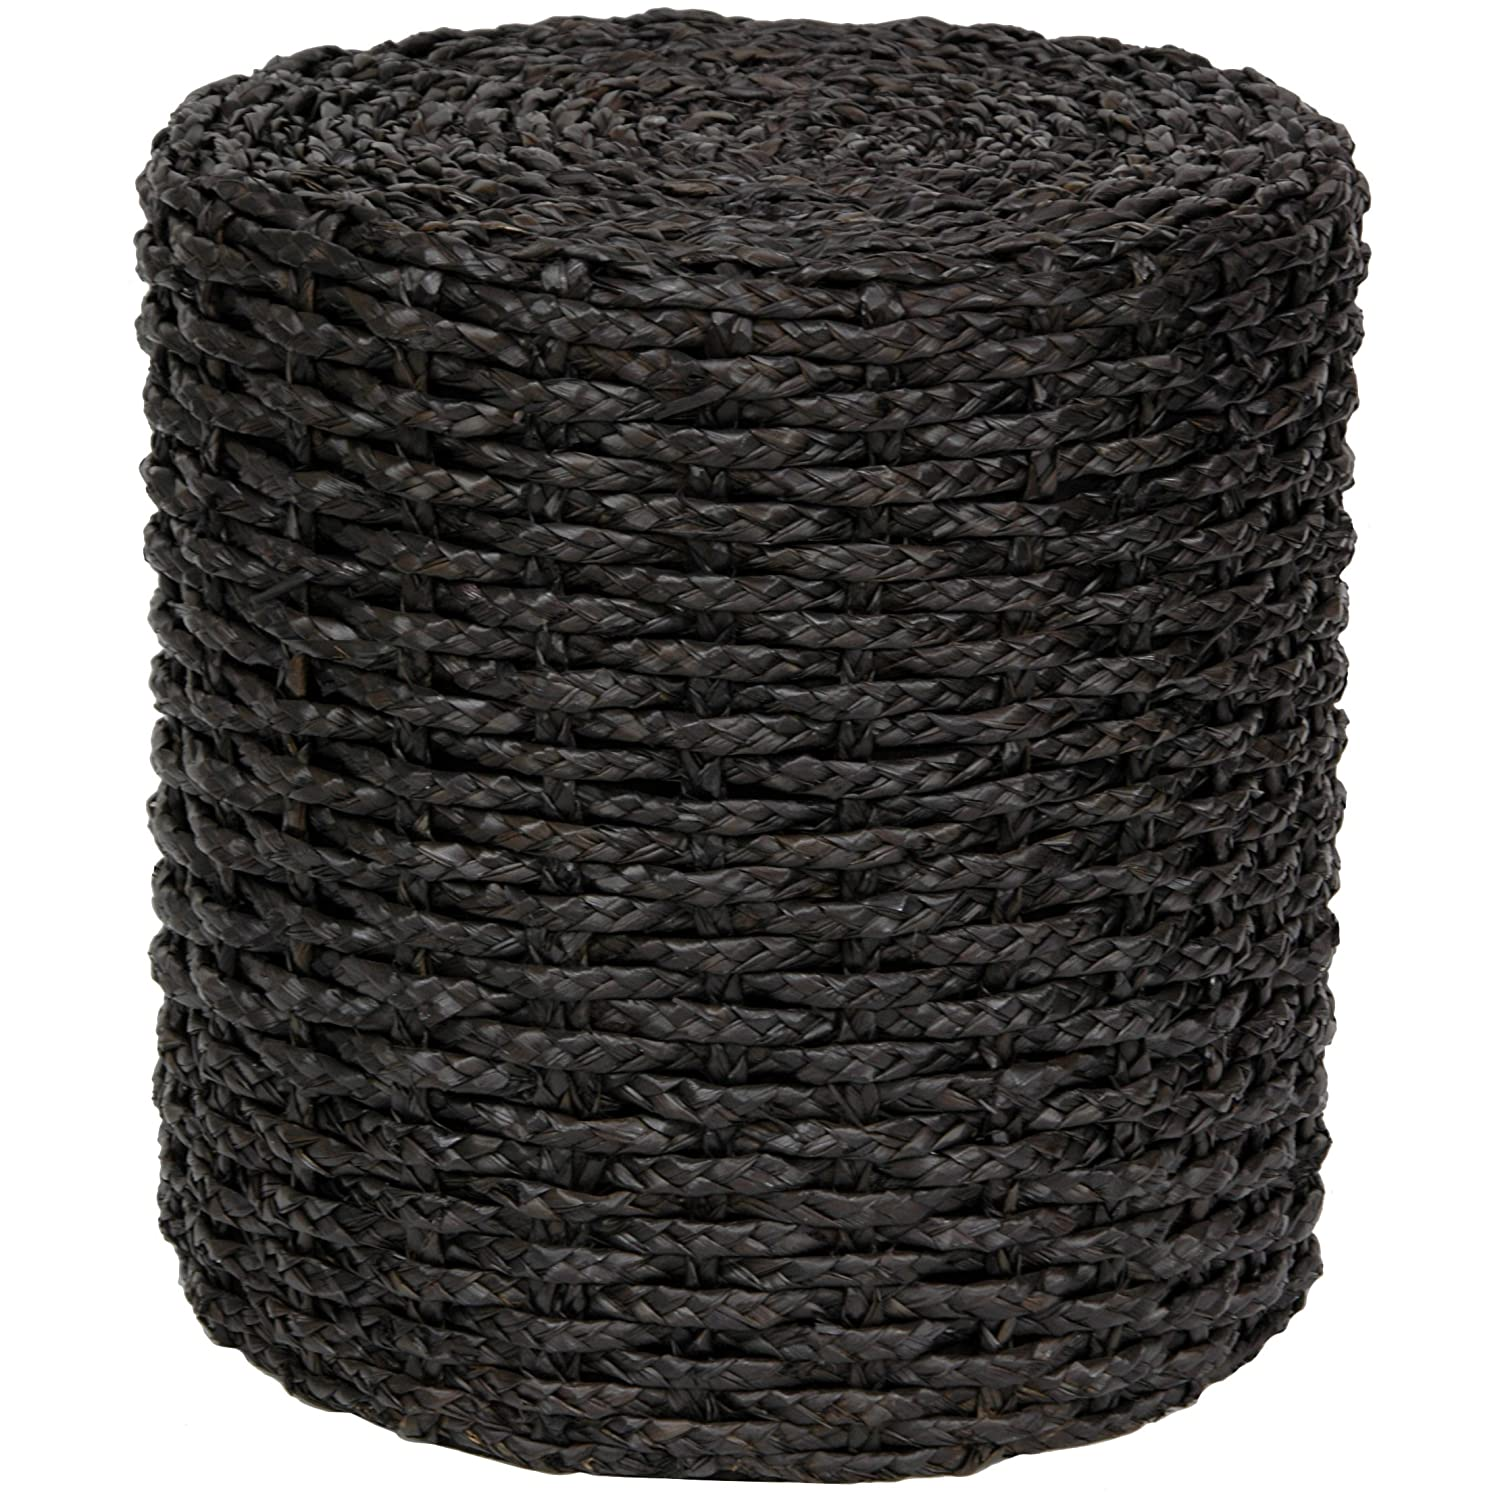 Oriental Furniture Rush Grass Knotwork Stool – Black